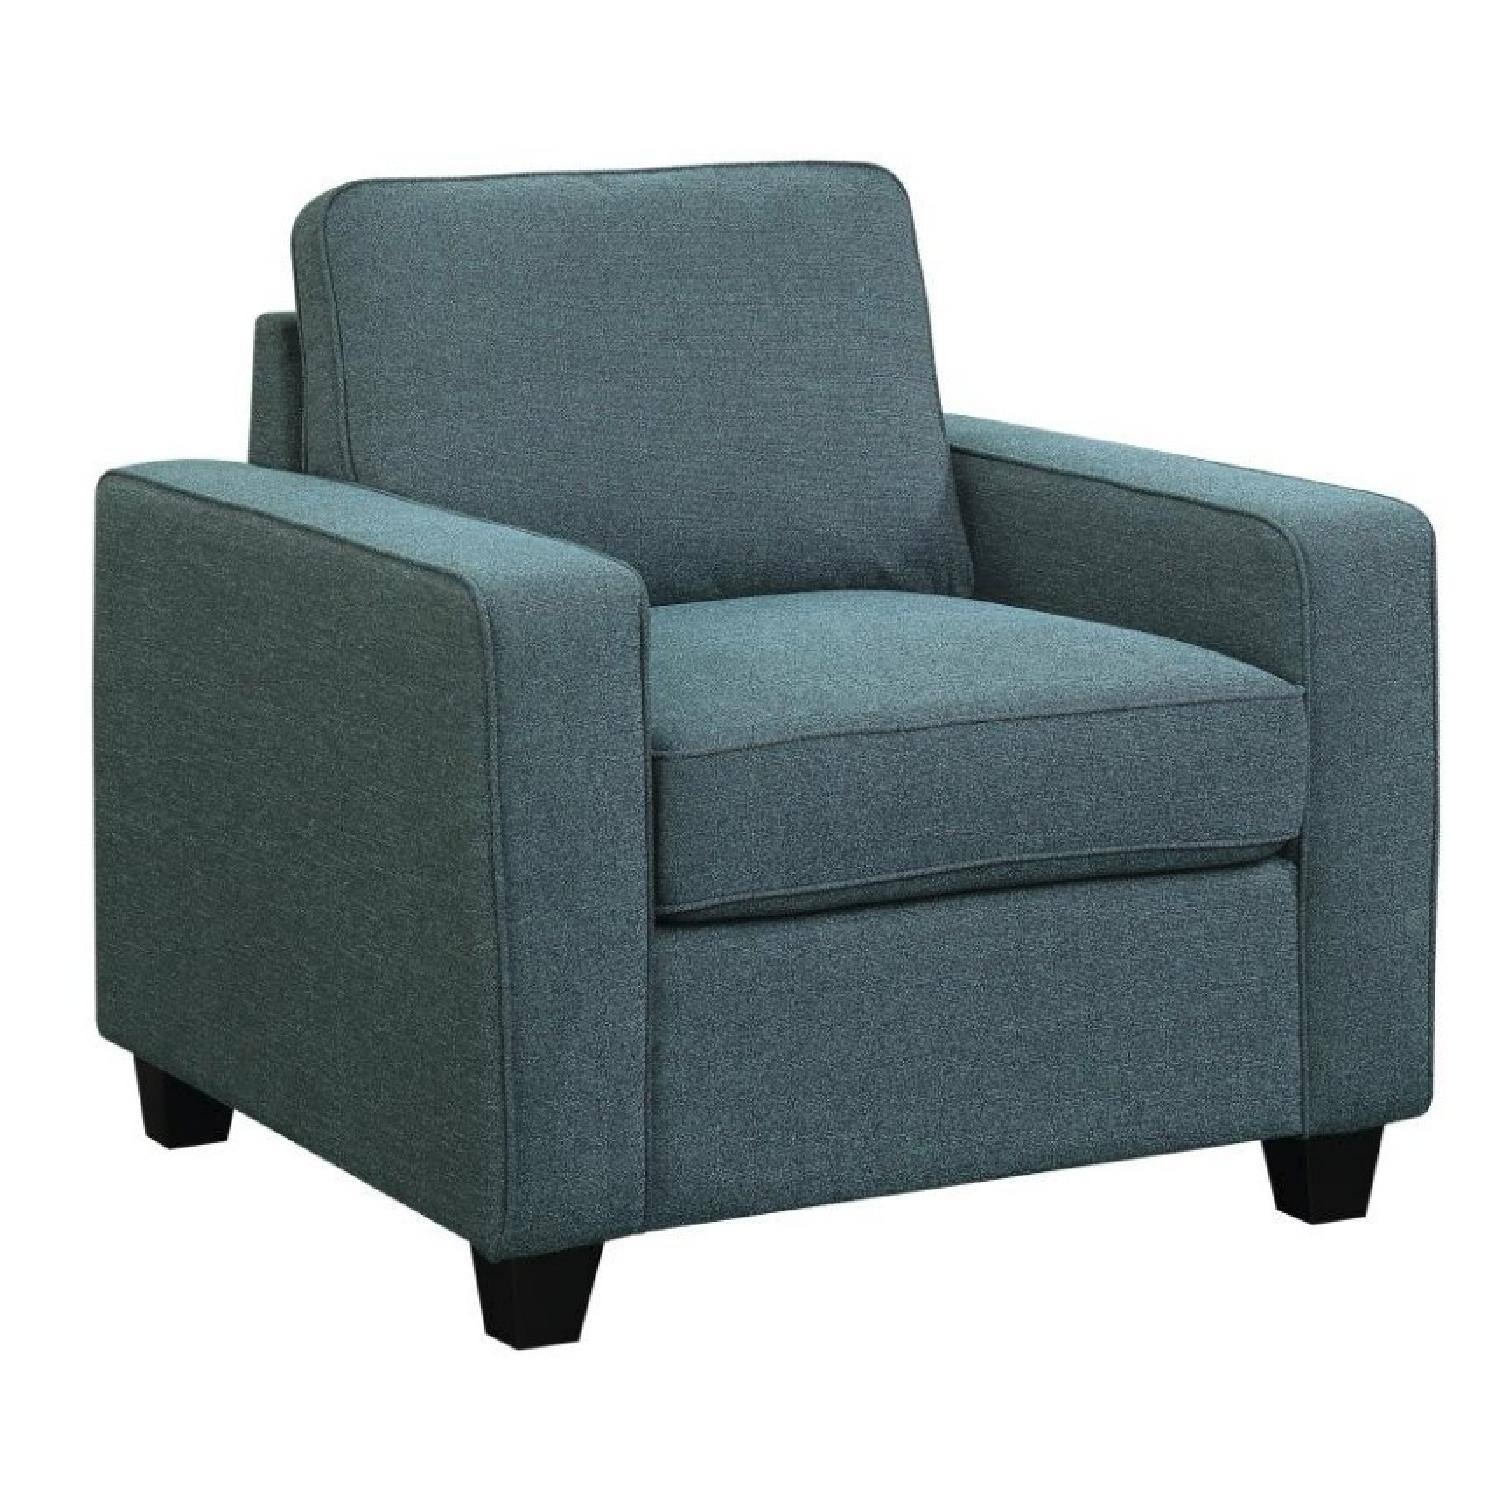 Track Arm Chair in Blue Linen-Like Fabric